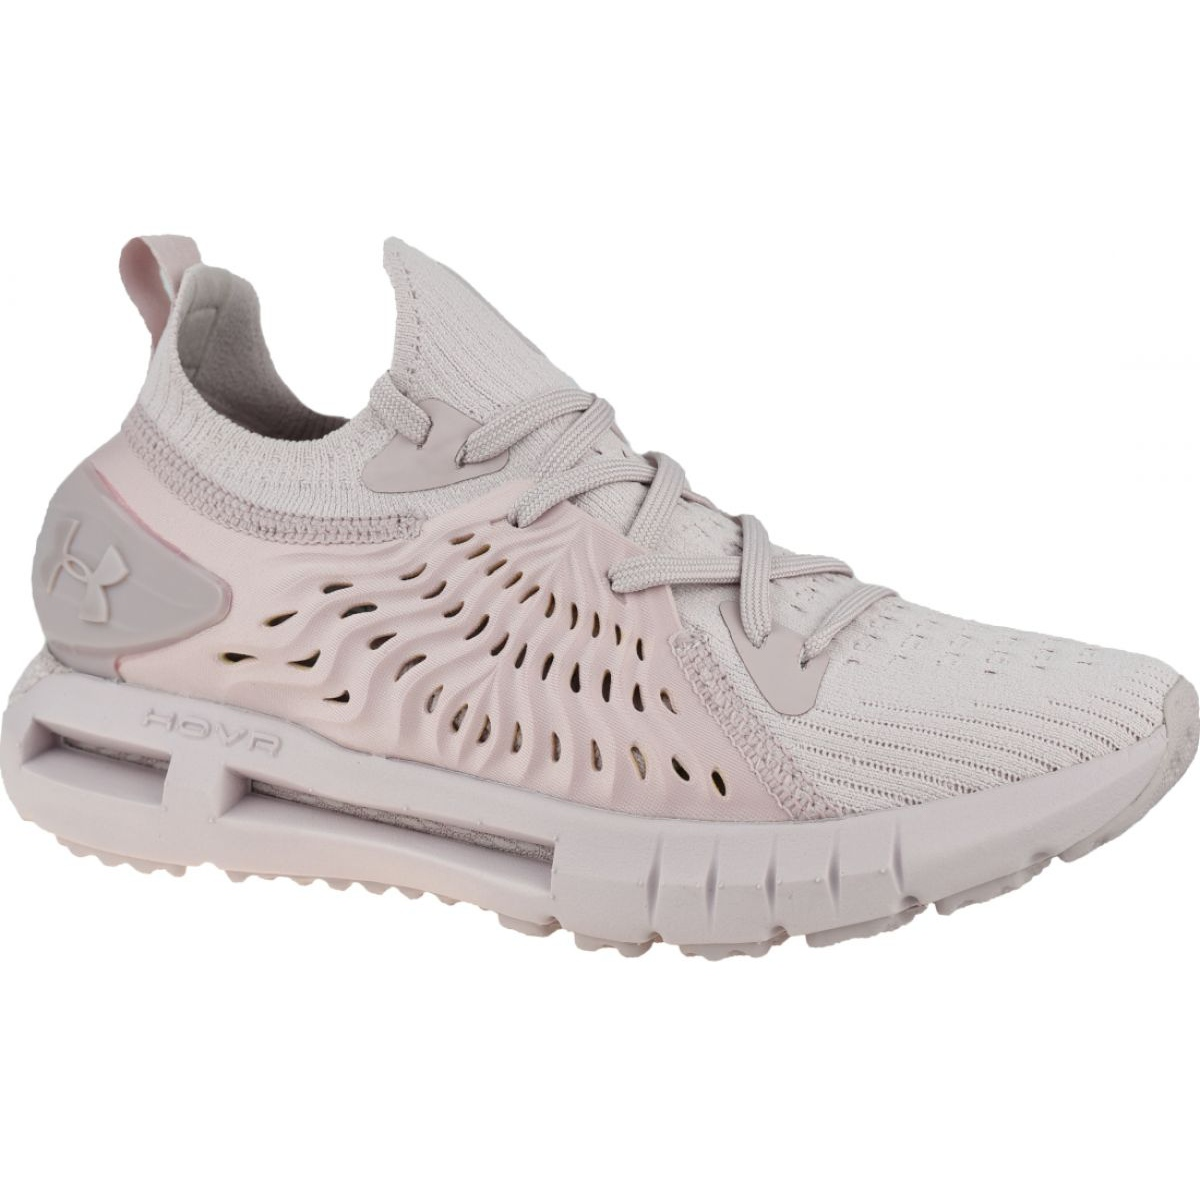 Under Armour Under Armor shoes in Hovr